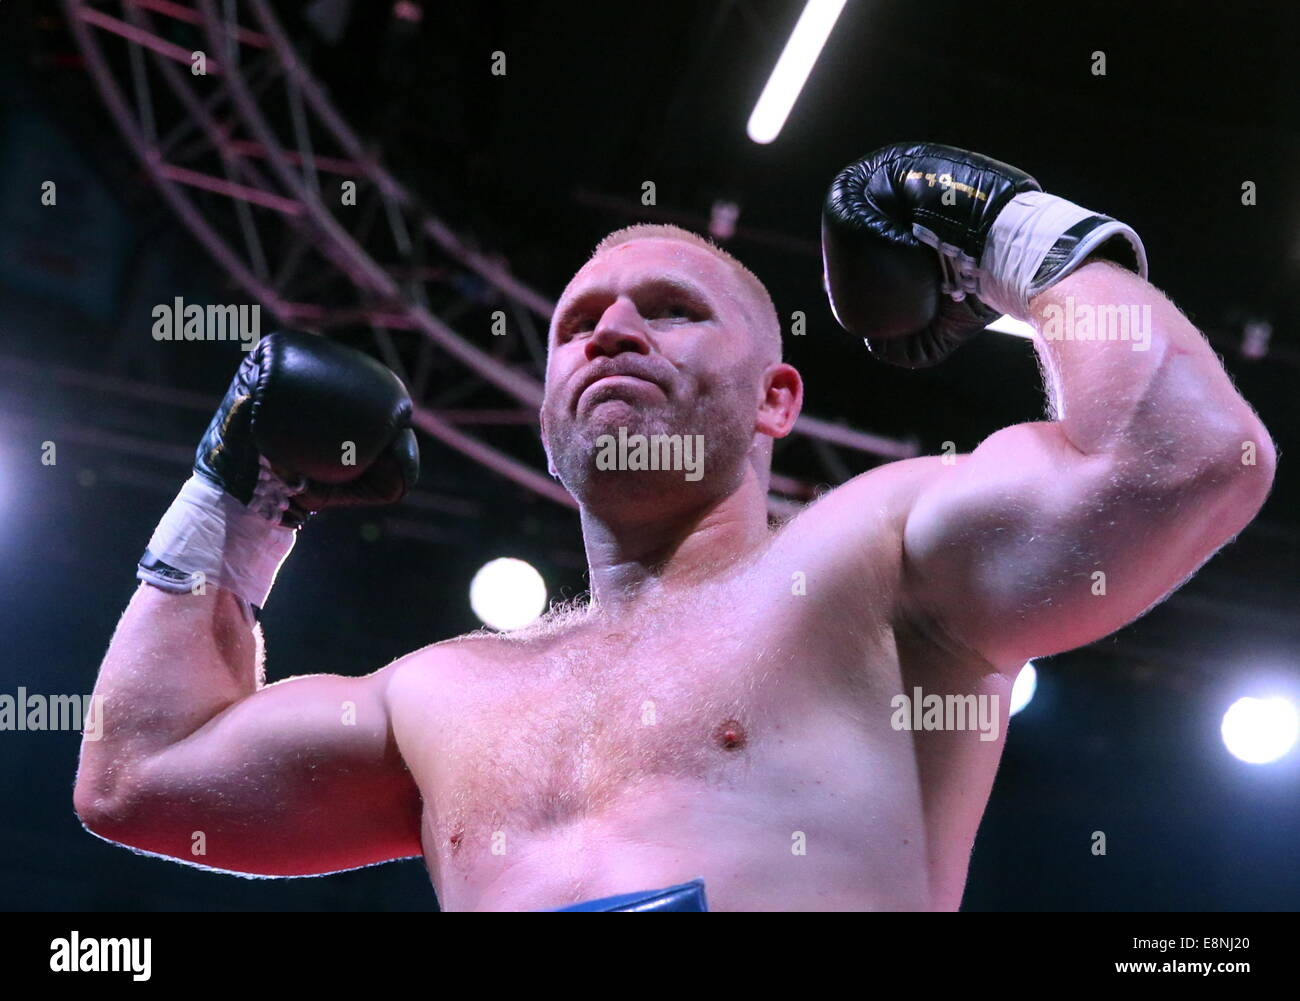 Moscow, Russia. 11th Oct, 2014. Russia's Sergei Kharitonov seen after wining the W5 World Title in heavyweight - Stock Image